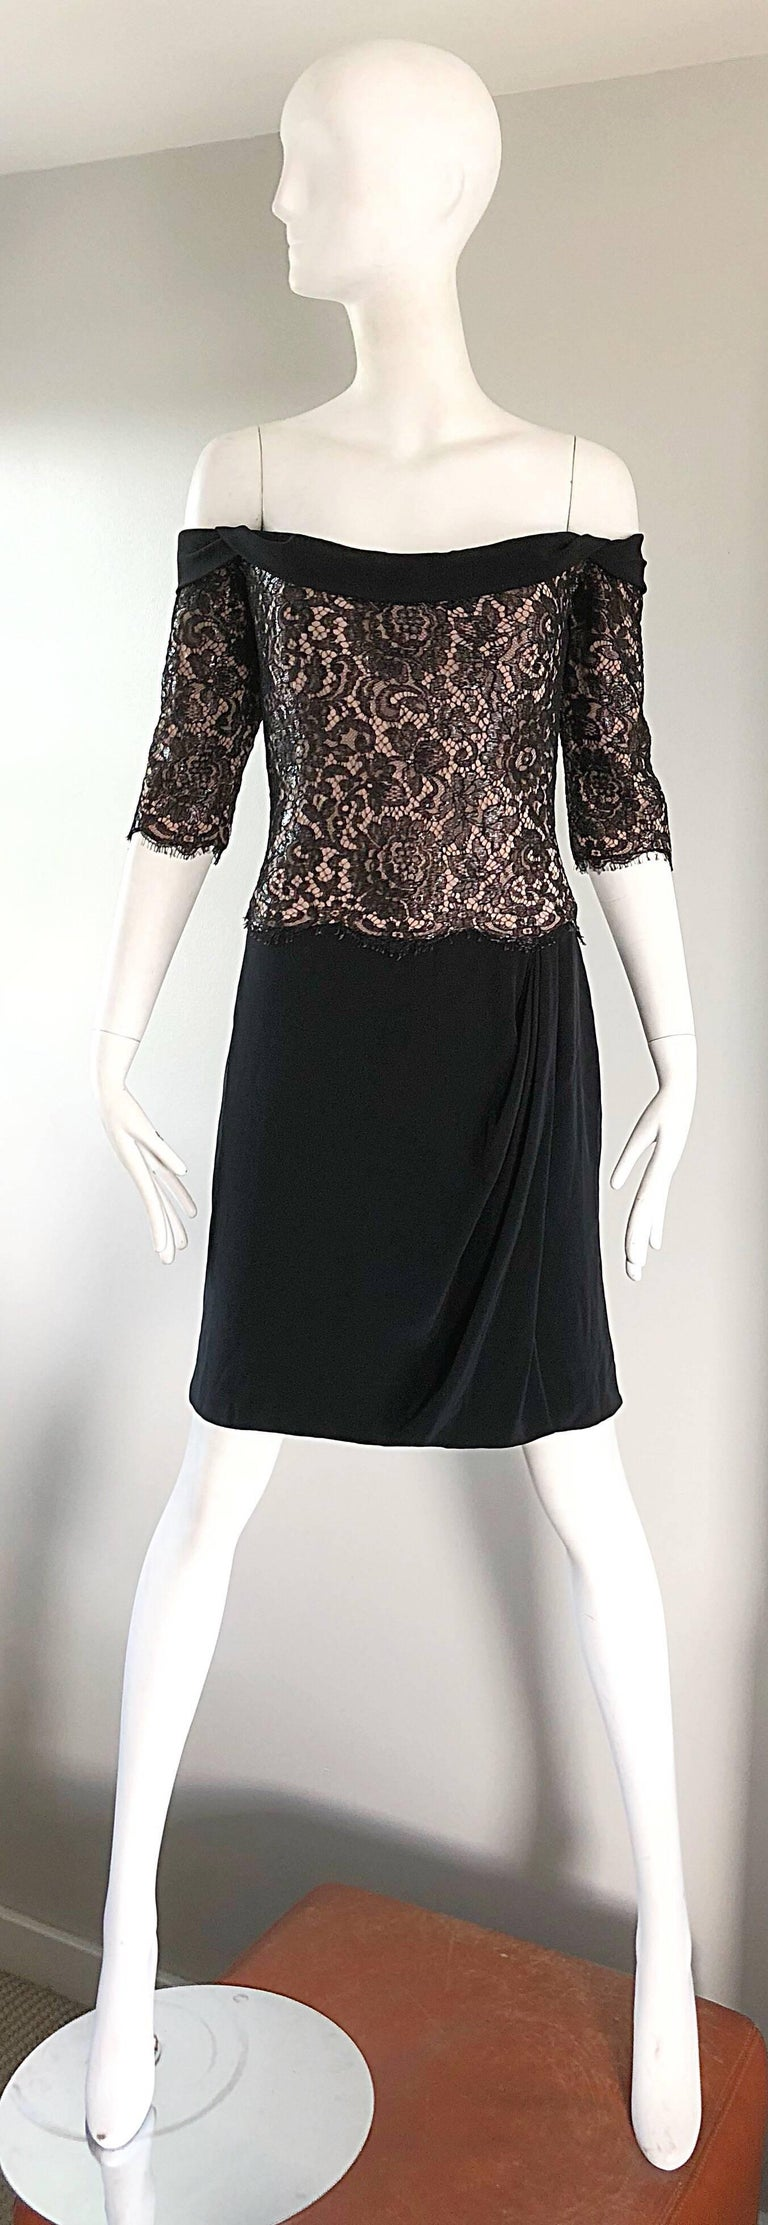 Vintage Bob Mackie Size 14 Black + Nude Lace Crepe Off - Shoulder 1990s Dress 2